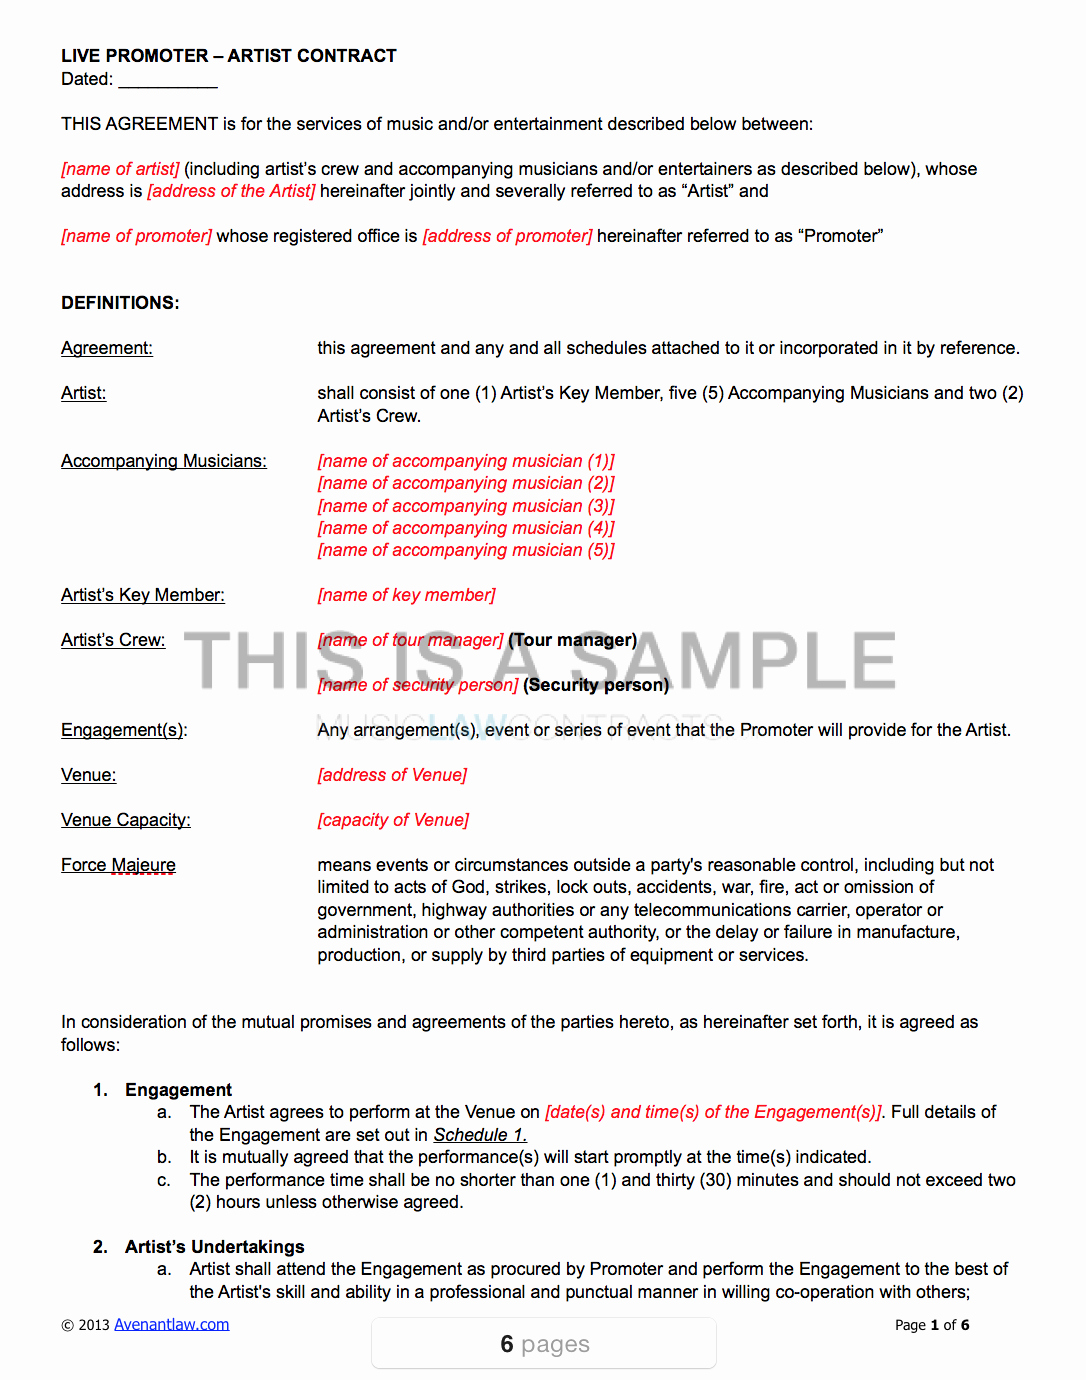 Music Performance Contract Template Fresh Live Promoter Artist Contract Template